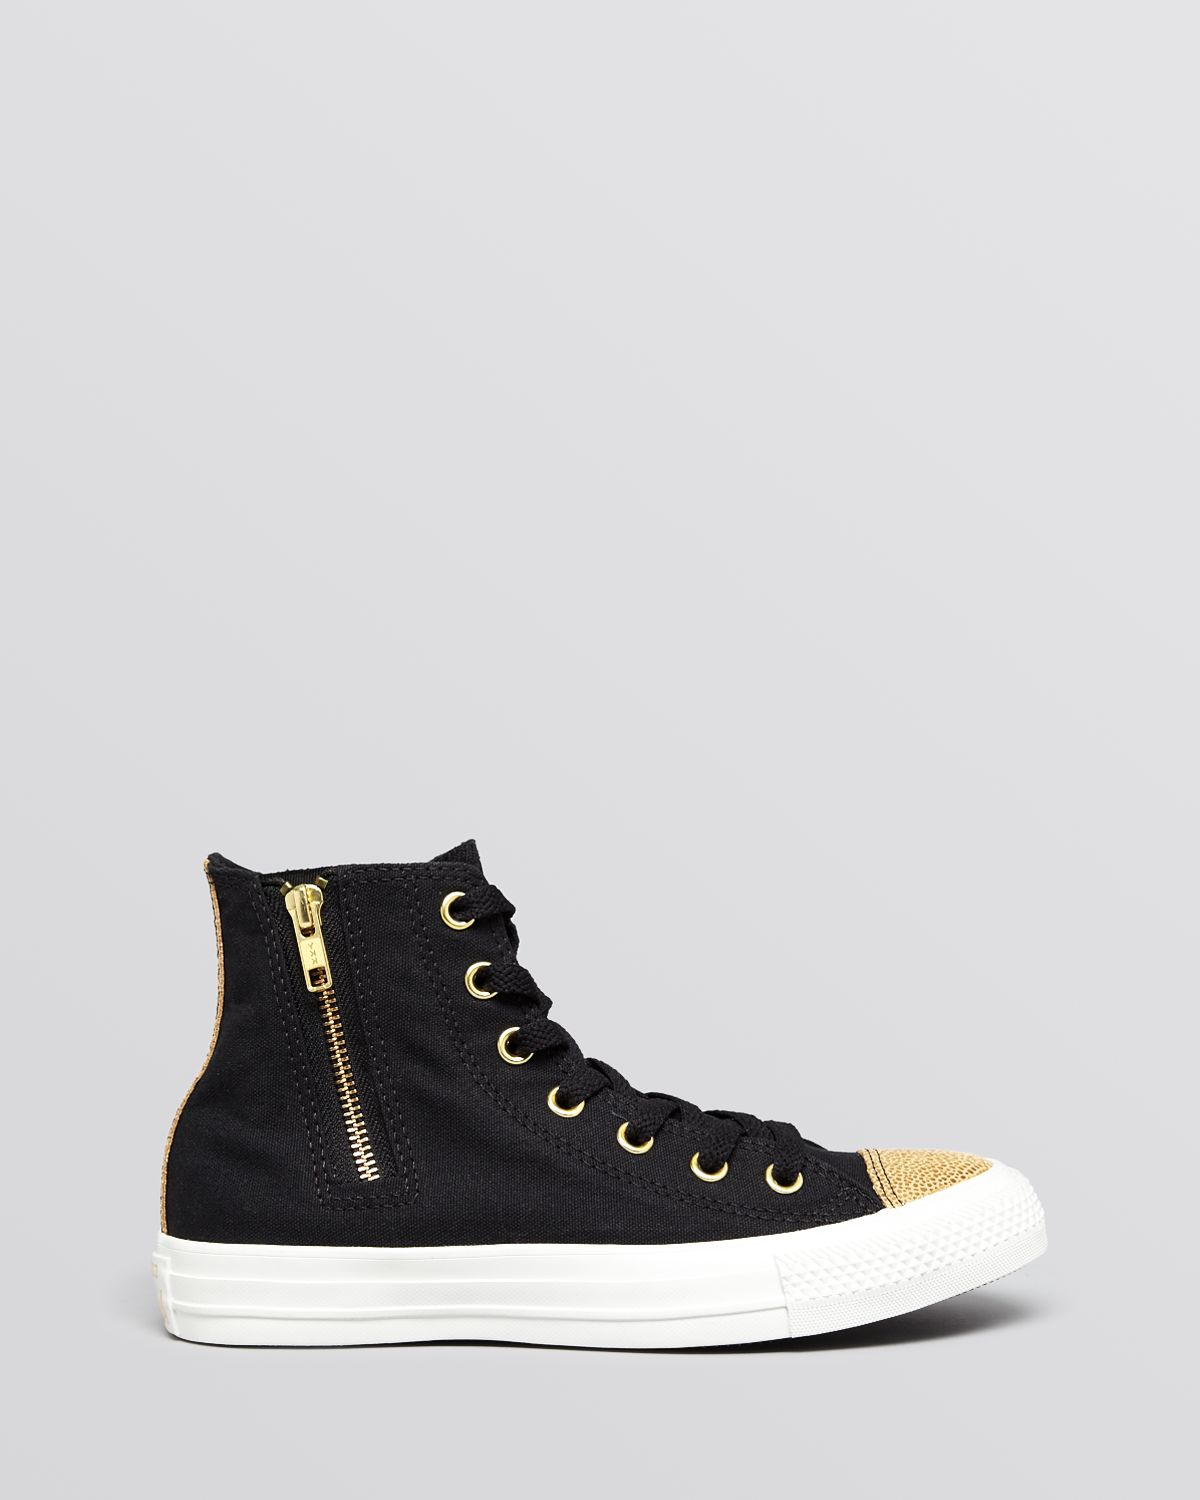 8b2e6e8bd0f96c Lyst - Converse Lace Up High Top Sneakers Chuck Taylor All Star Side ...